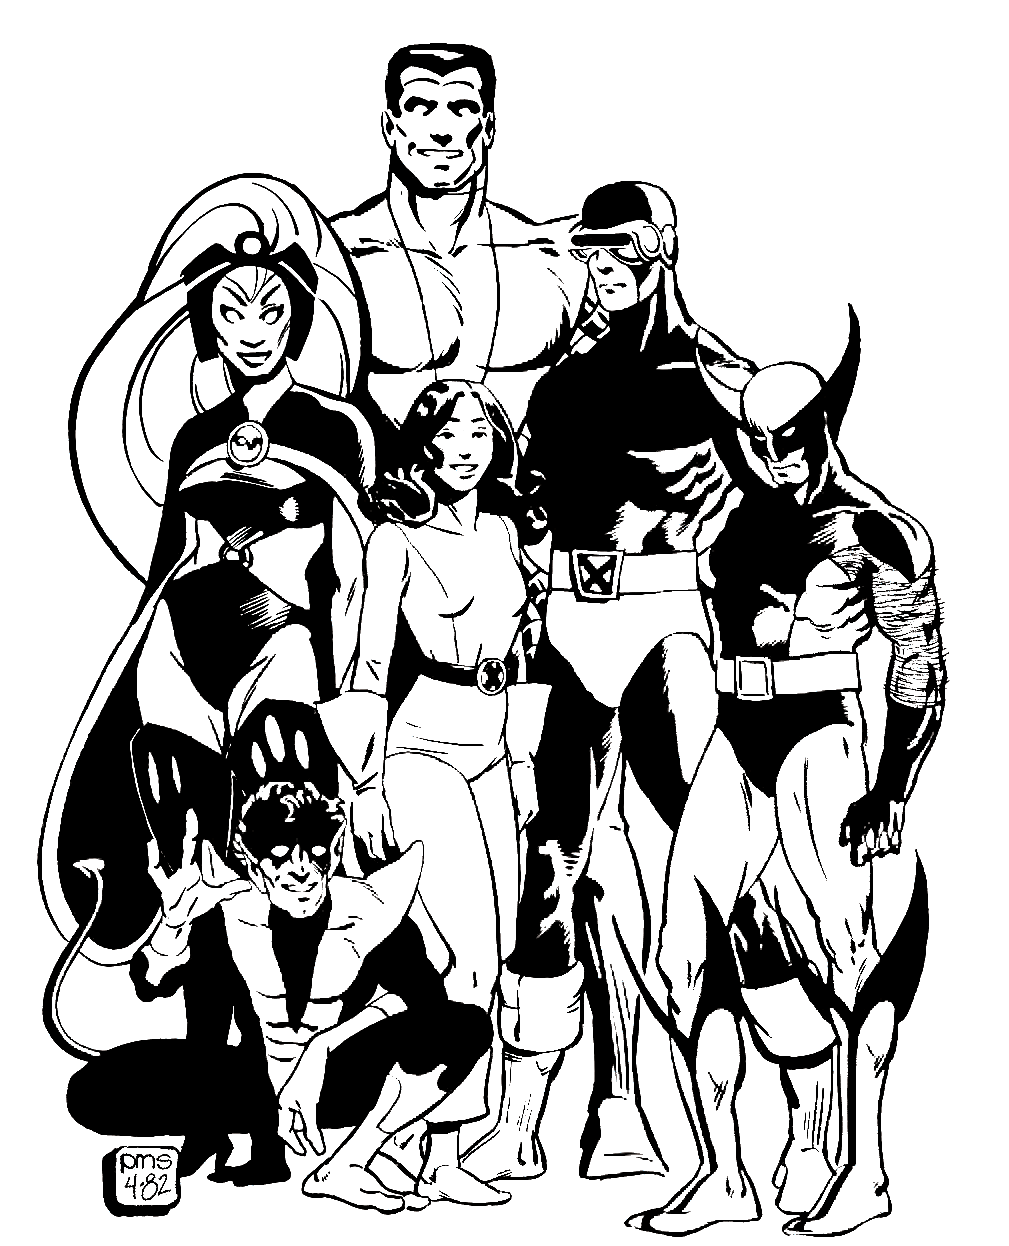 the dork review x men coloring page for the holidays